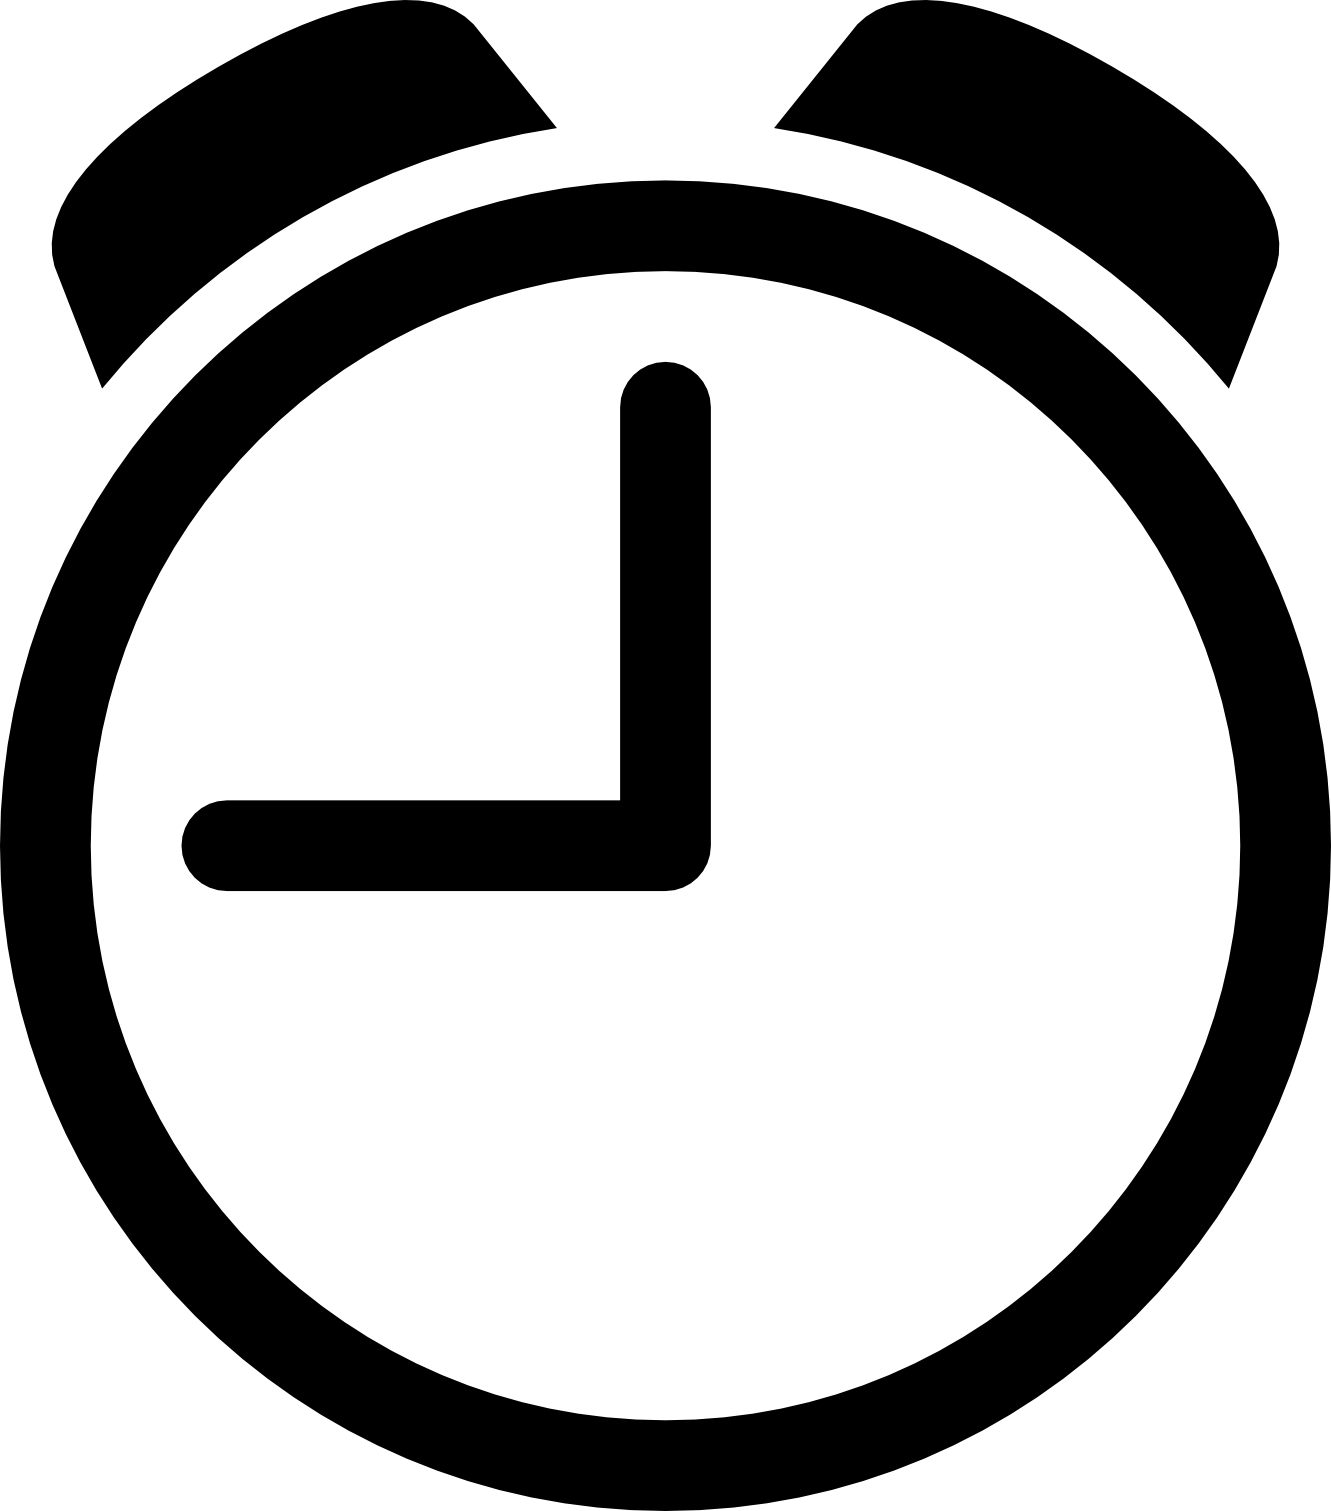 Clock clipart black and white. Download images free icons